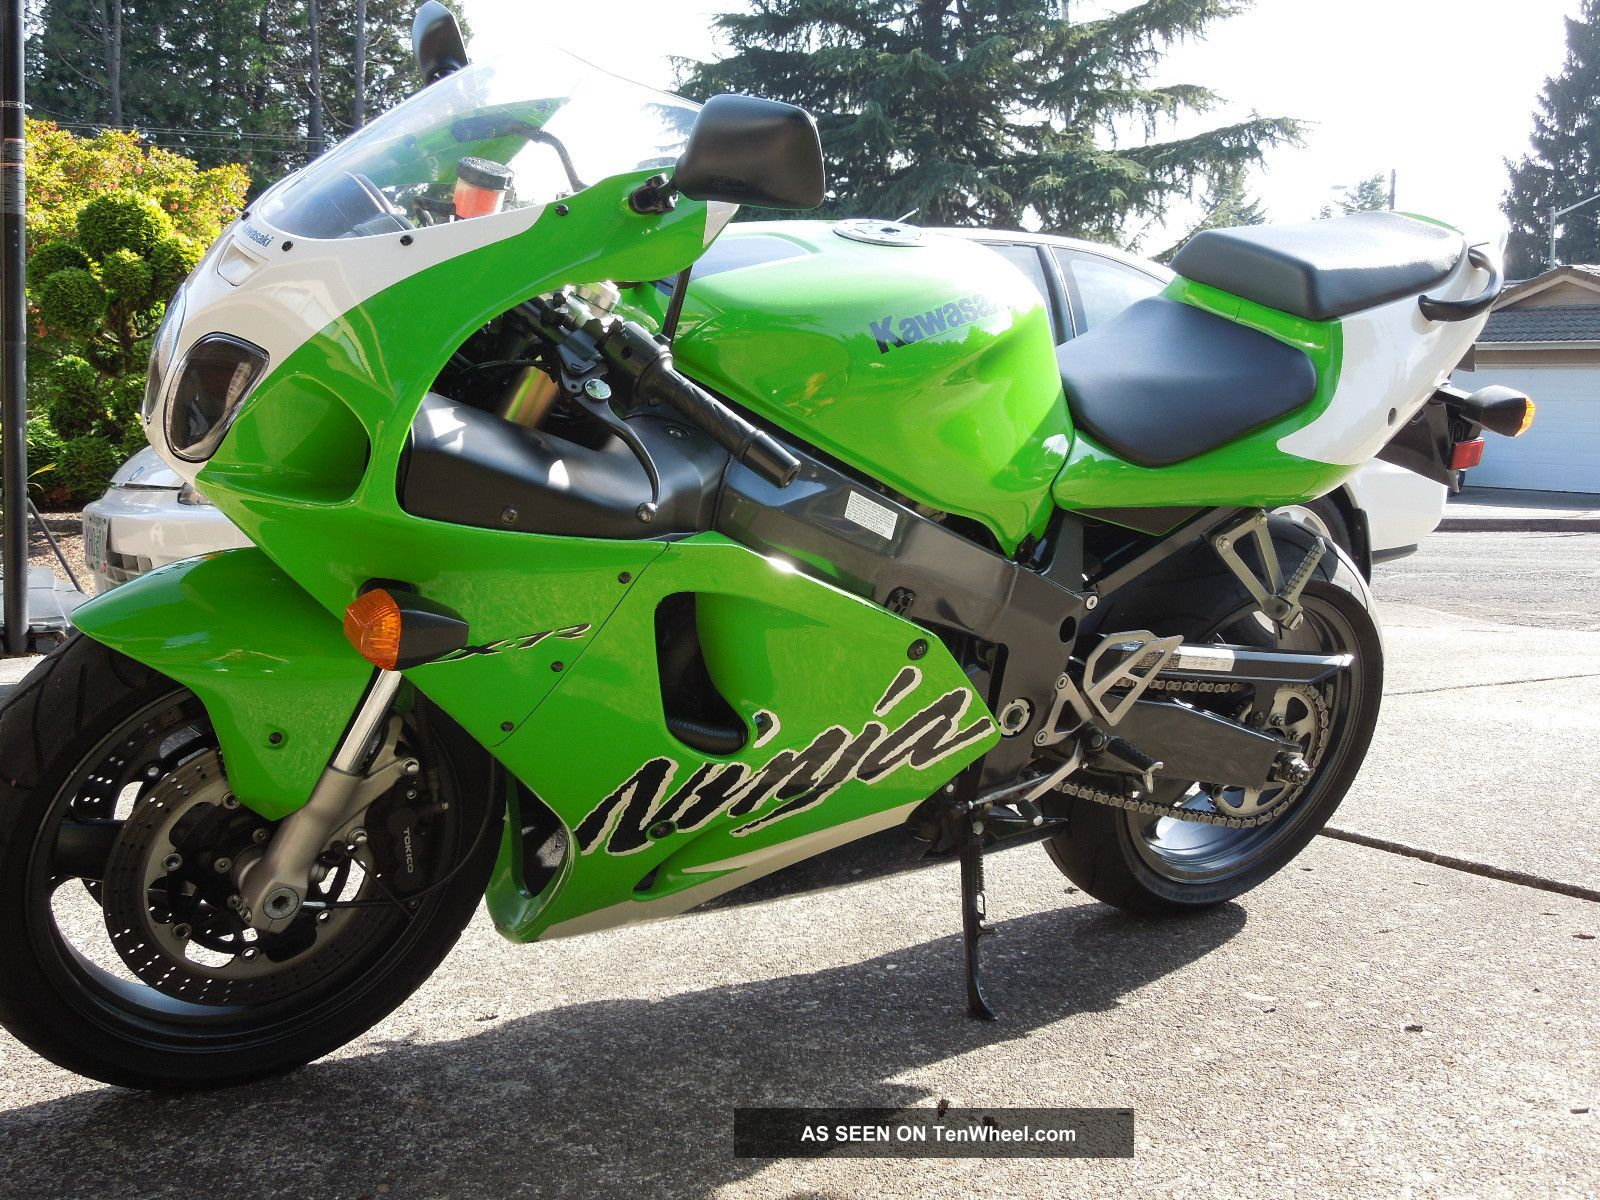 1999_kawasaki_ninja_zx7r__zx7__zx7_r__zx7rr__zx7___r_3_lgw kawasaki zx7r wiring diagram 2006 manco intruder ii wire diagram zx9 wiring diagram at n-0.co